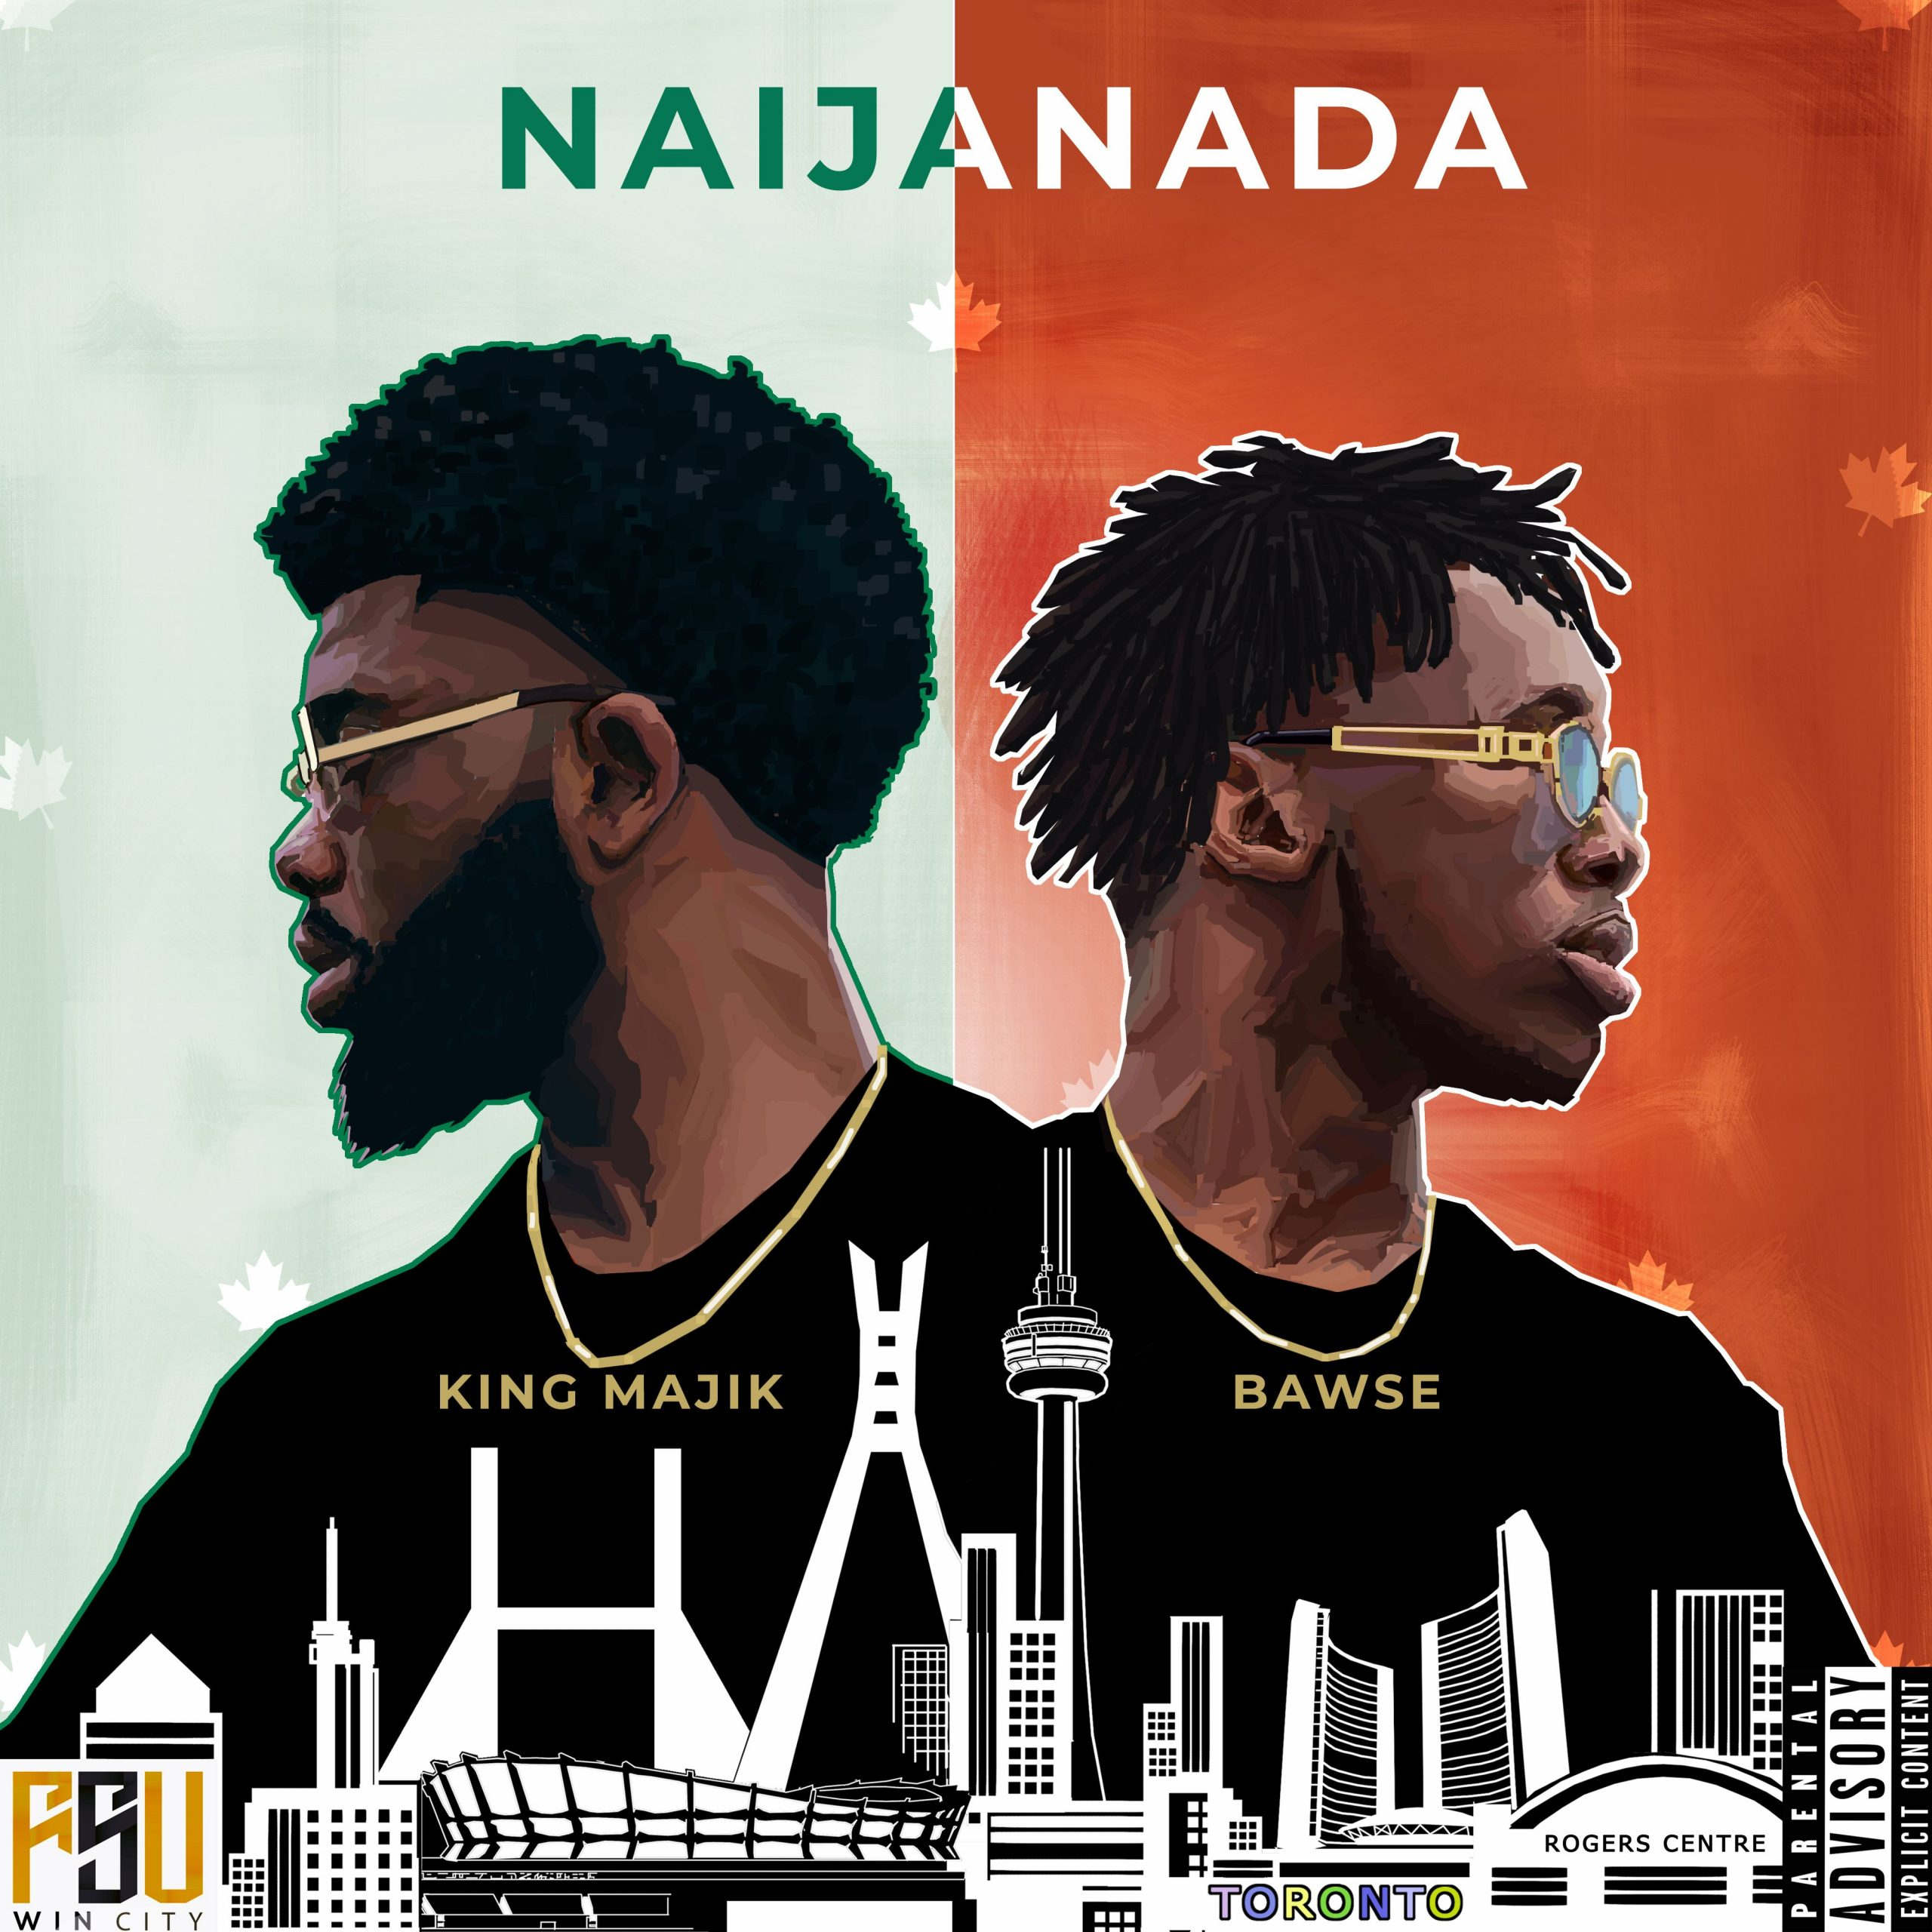 IS NAIJANADA THE NEW SPARK AFRO MUSIC NEEDS?